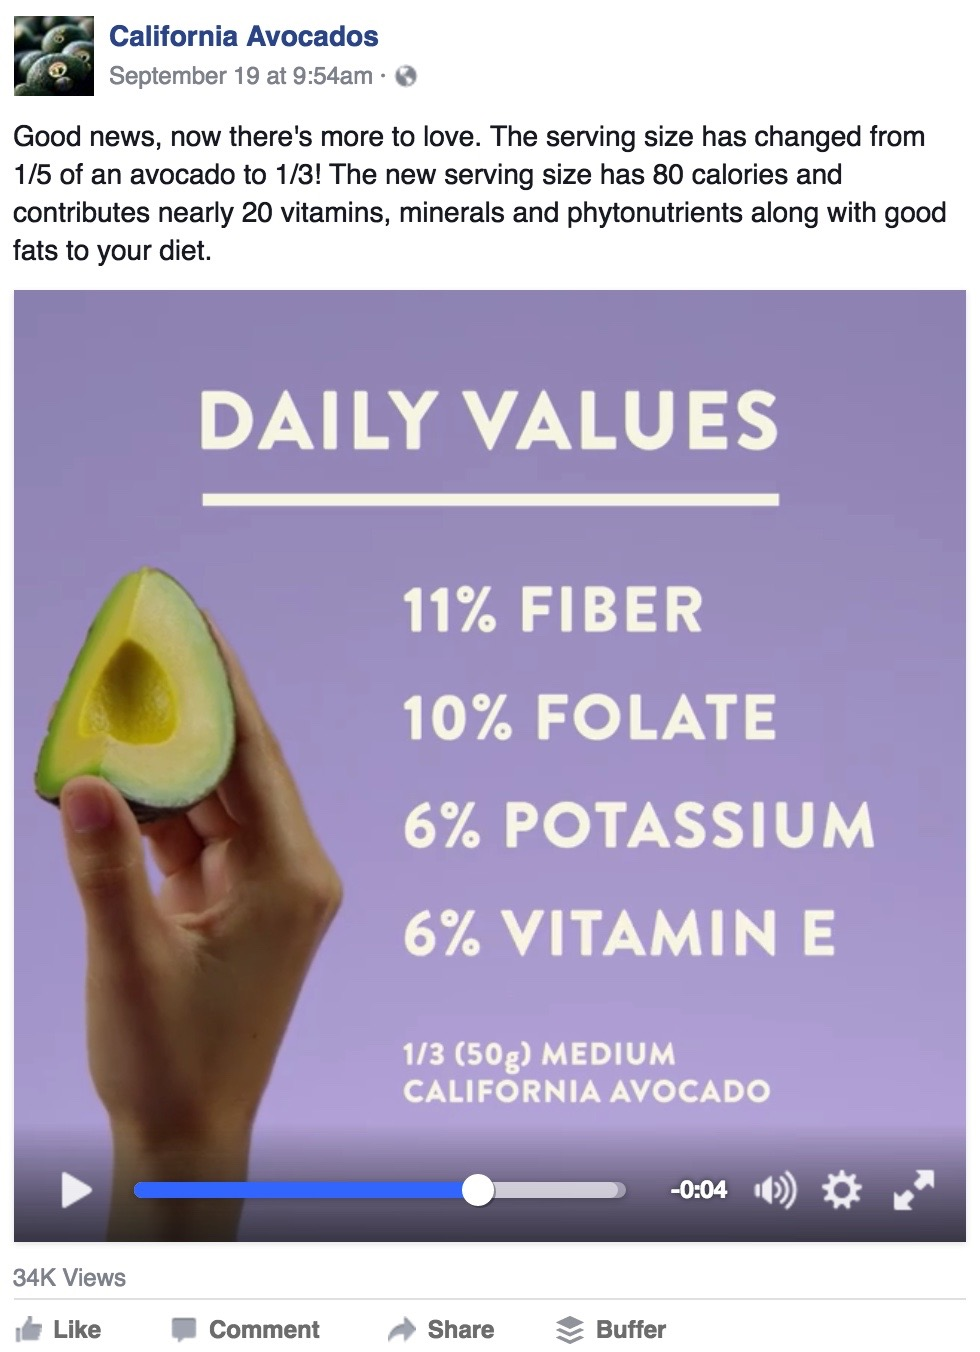 The Commission announced the updated 1/3 avocado serving size on Facebook with a video featuring nutrition information.